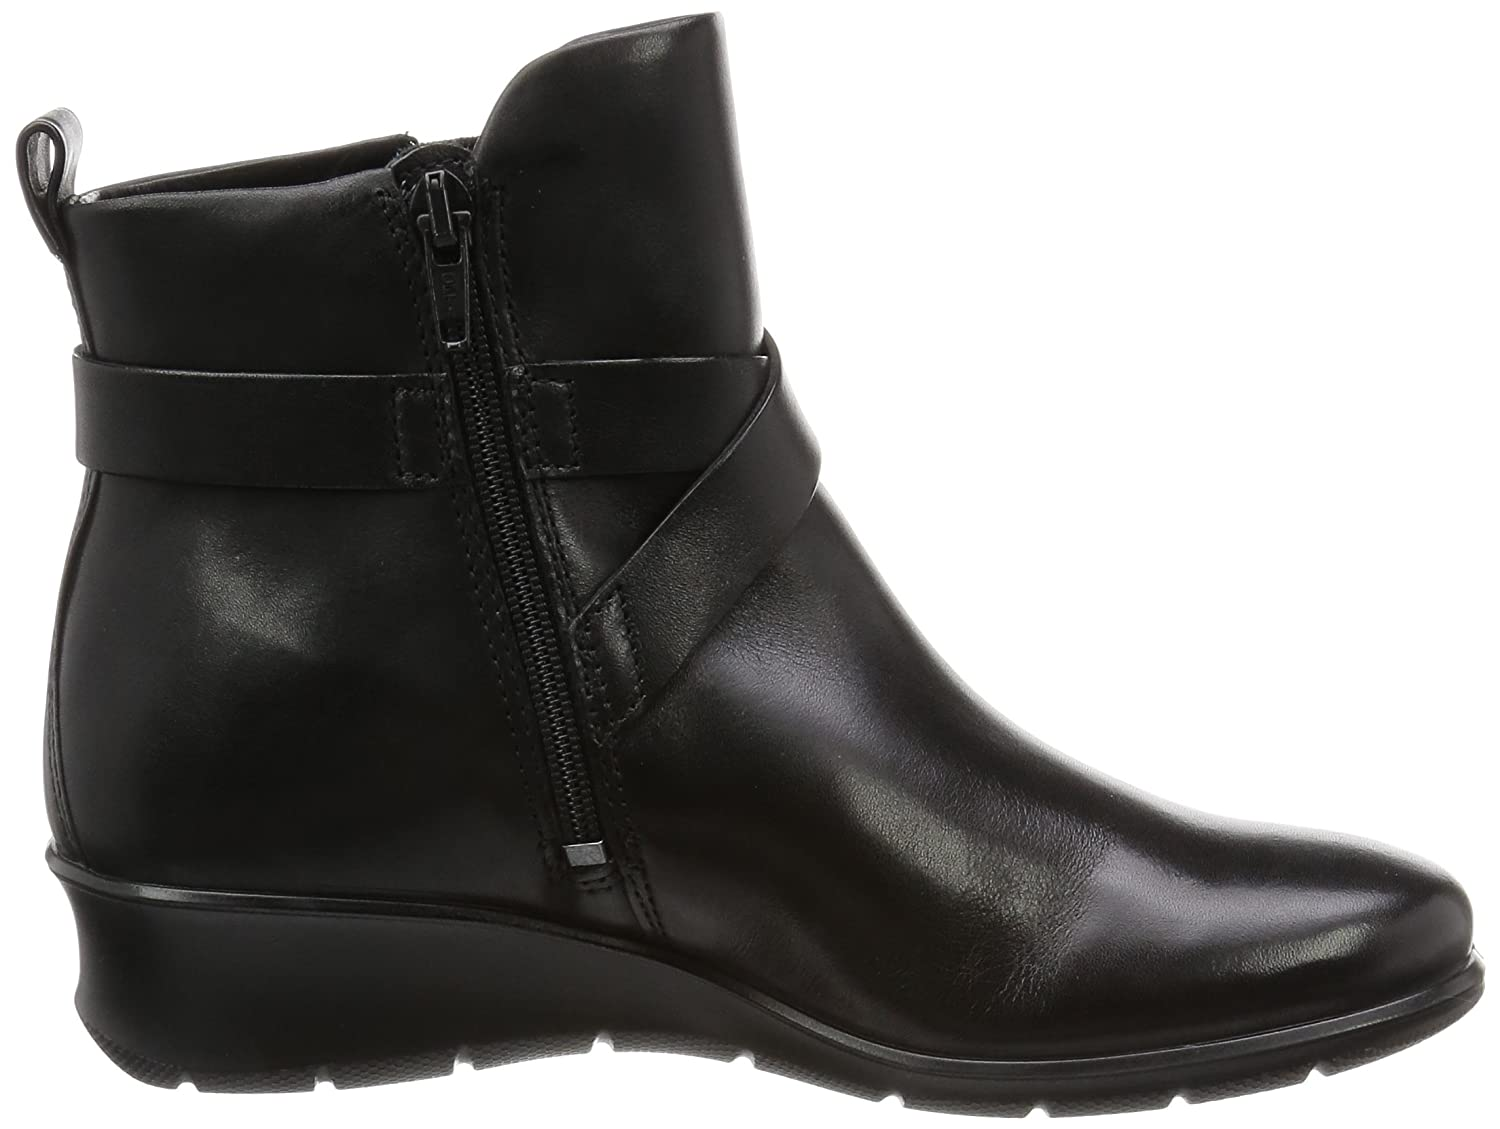 ECCO Women's Felicia Ankle M Buckle Boot B01AAUGQ7K 42 EU/11-11.5 M Ankle US|Black 05b6b3